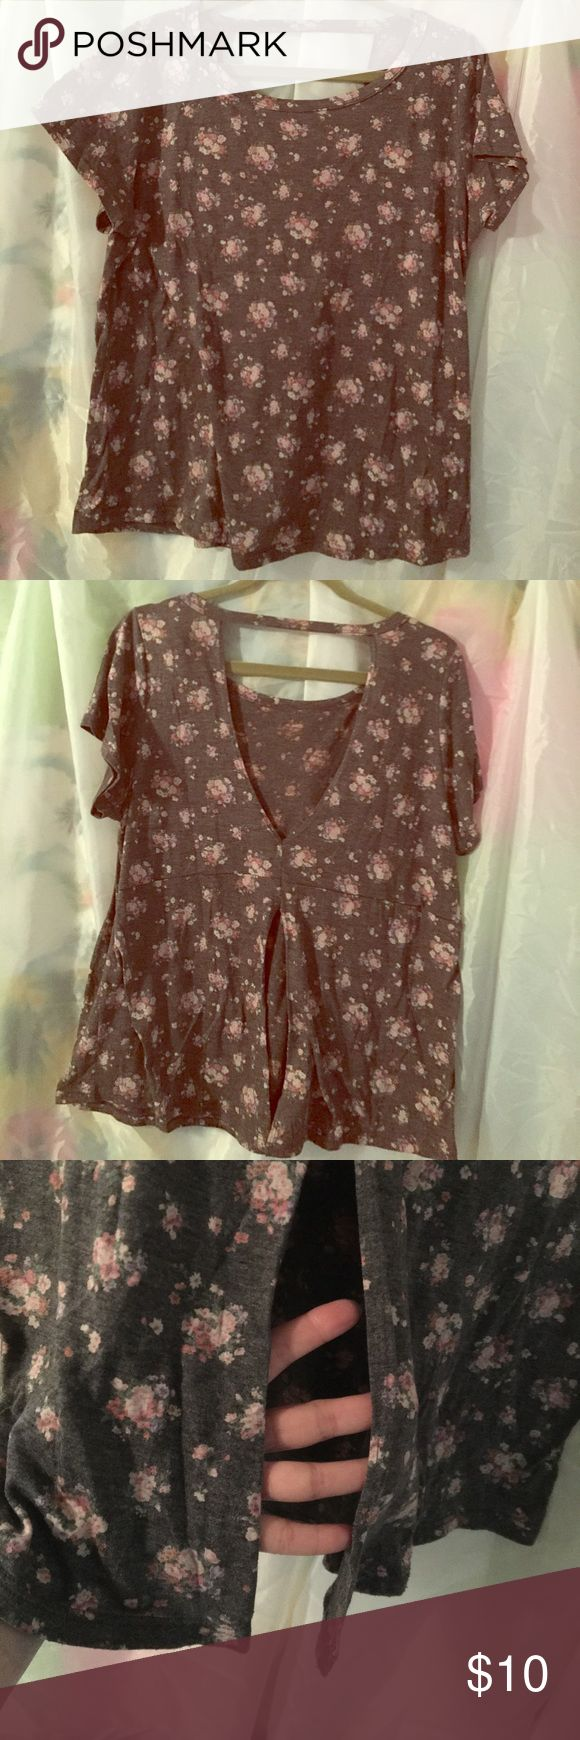 Trendy floral plus size top size 1X Really soft floral low and slit back.  Covers all in front but I wore pink, white of black cami tops underneath.  Tag is cut out but it is from forever 21 +.  Size is 1X.  No holes, stains or fading. Forever 21 Tops Tees - Short Sleeve